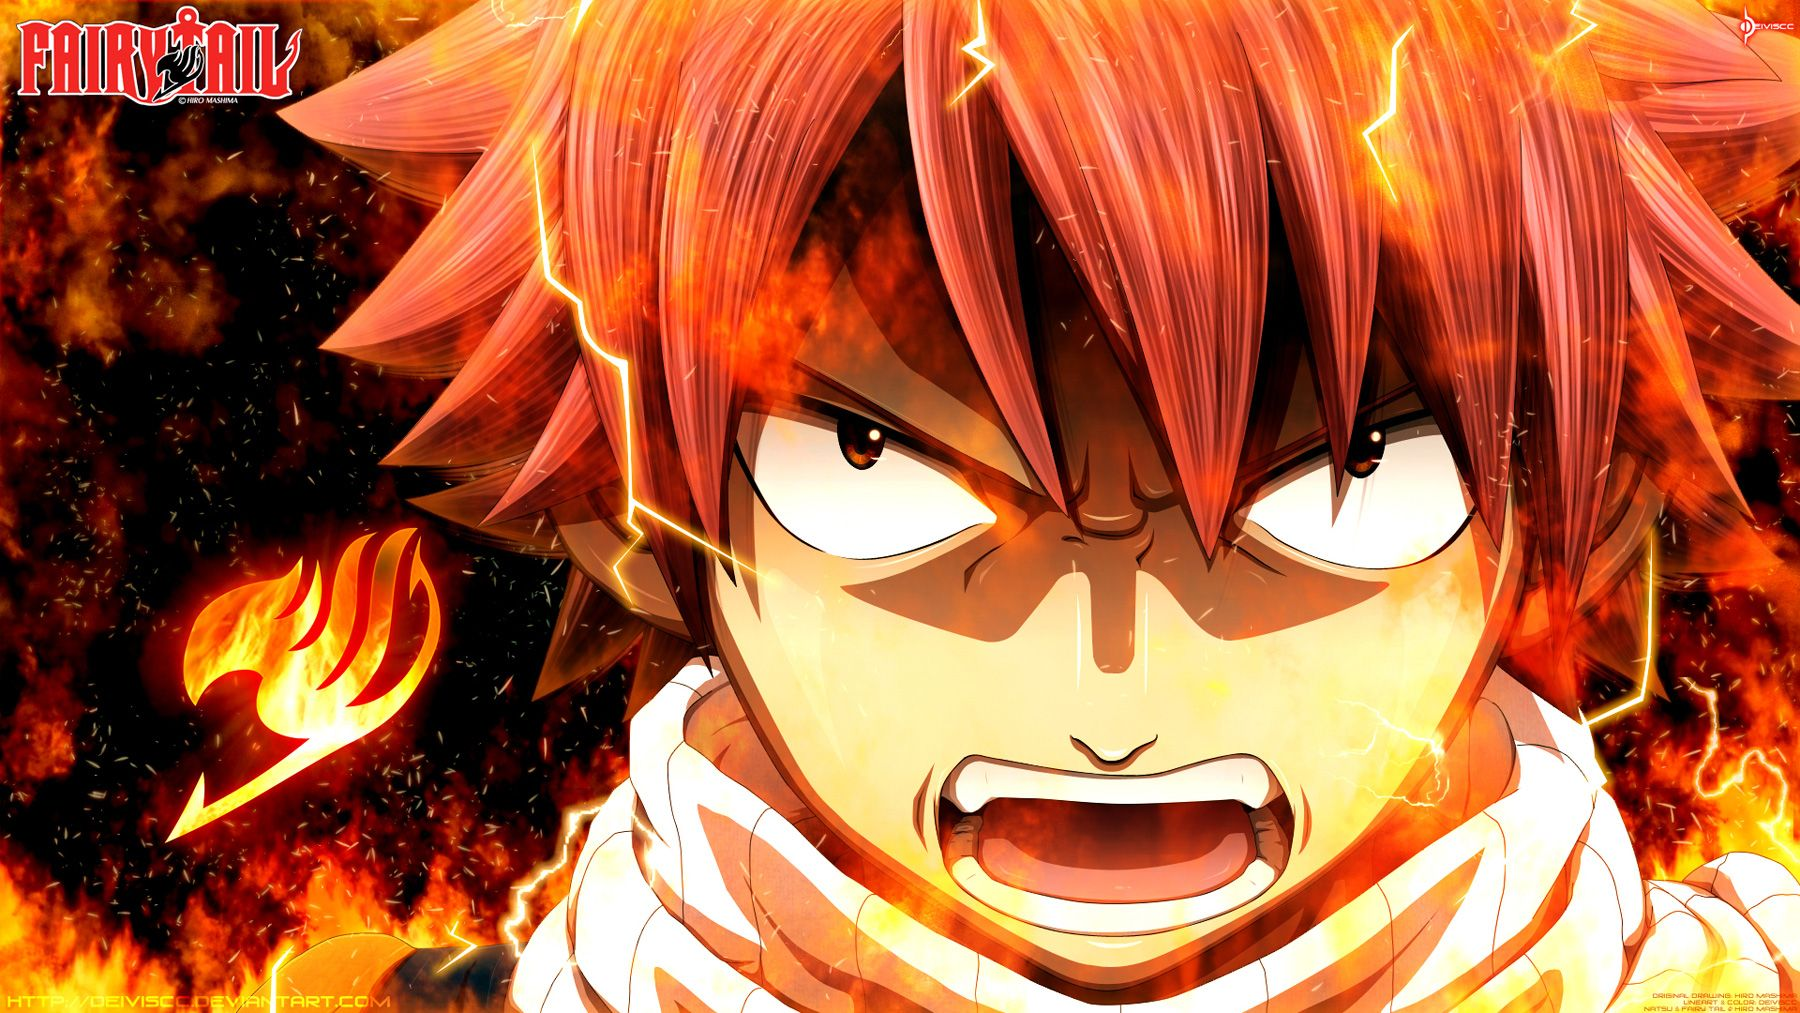 You are so badass, Natsu